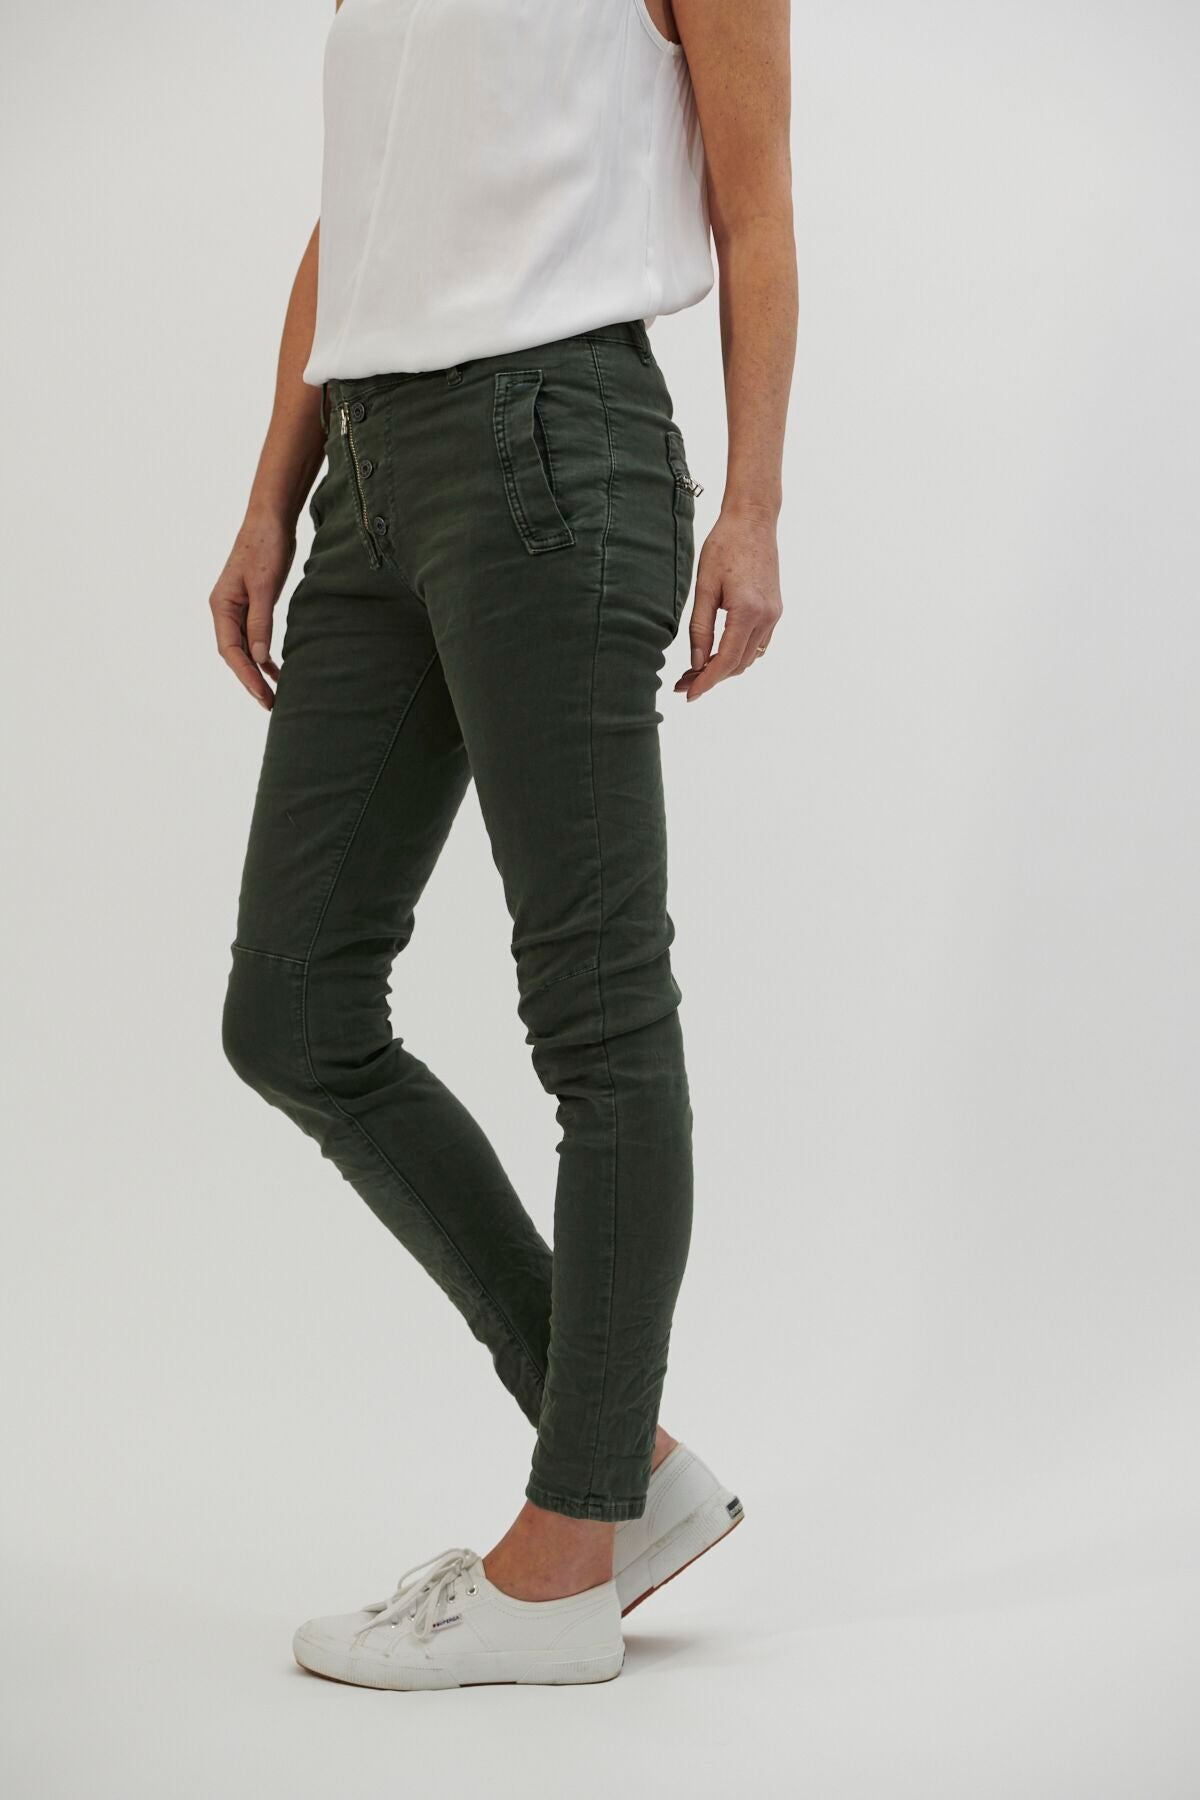 ITALIAN STAR - Button Jeans Military